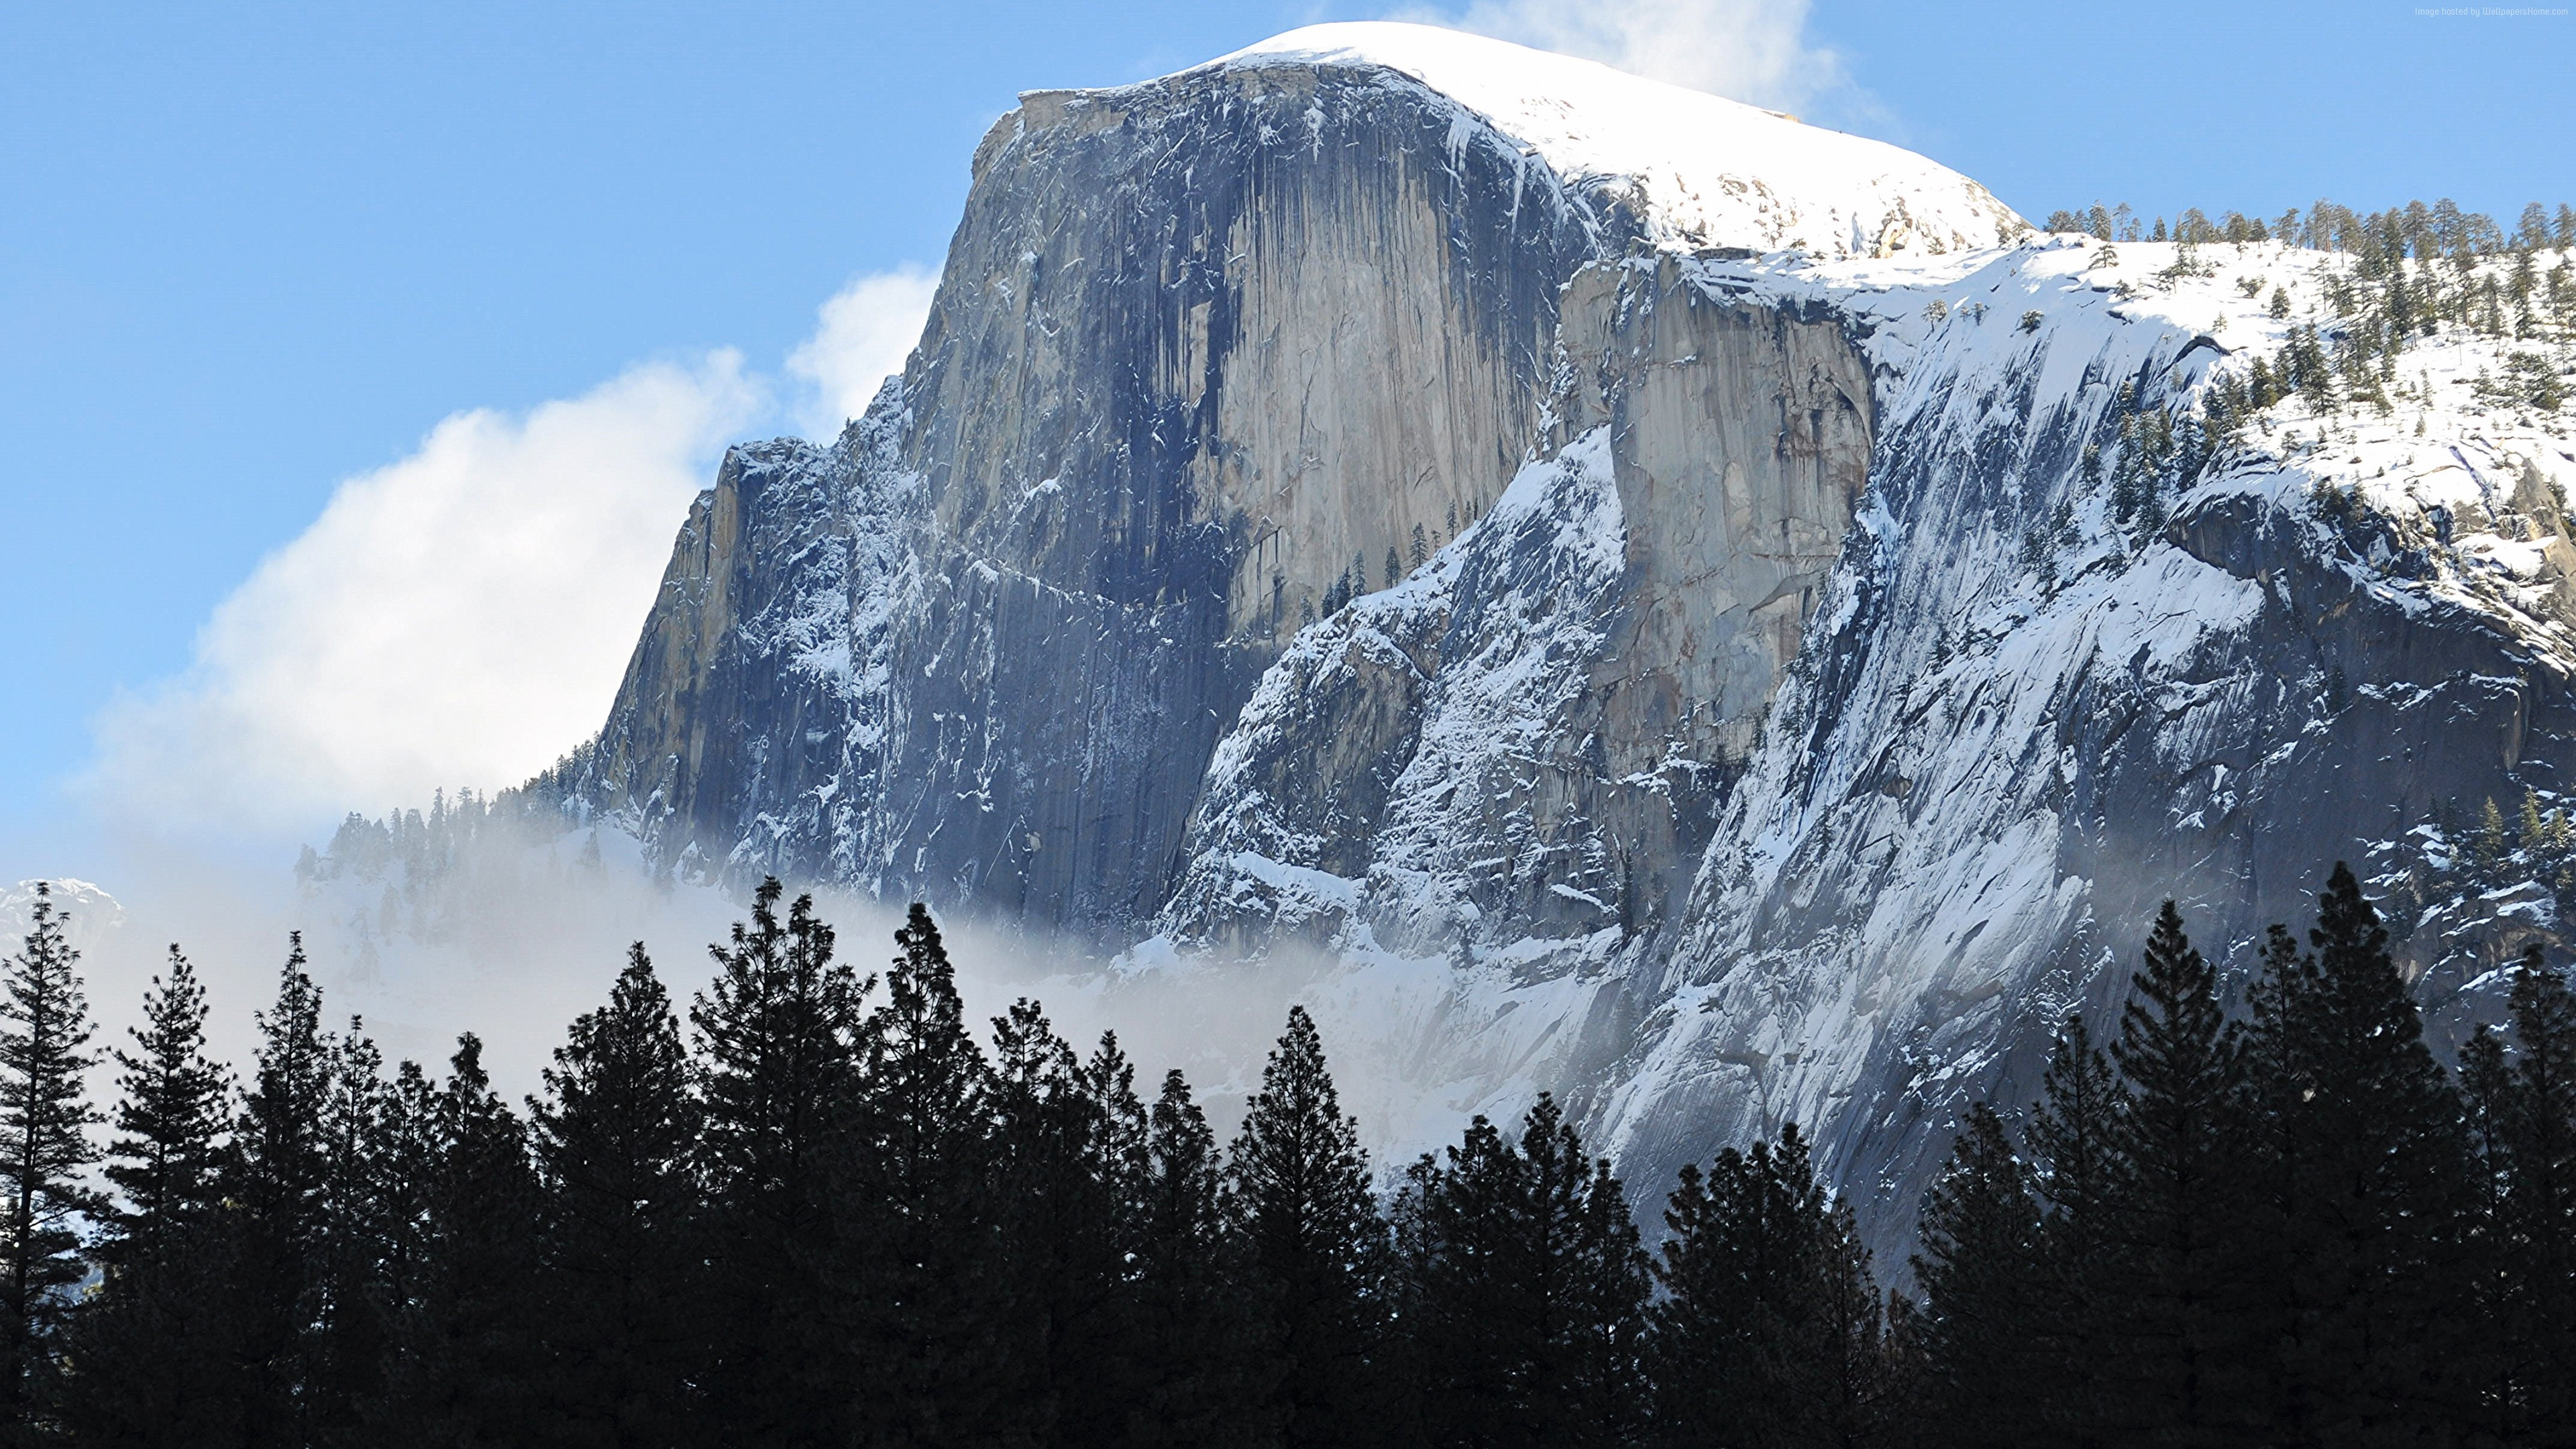 84 848423 hd resolution yosemite national park half dome